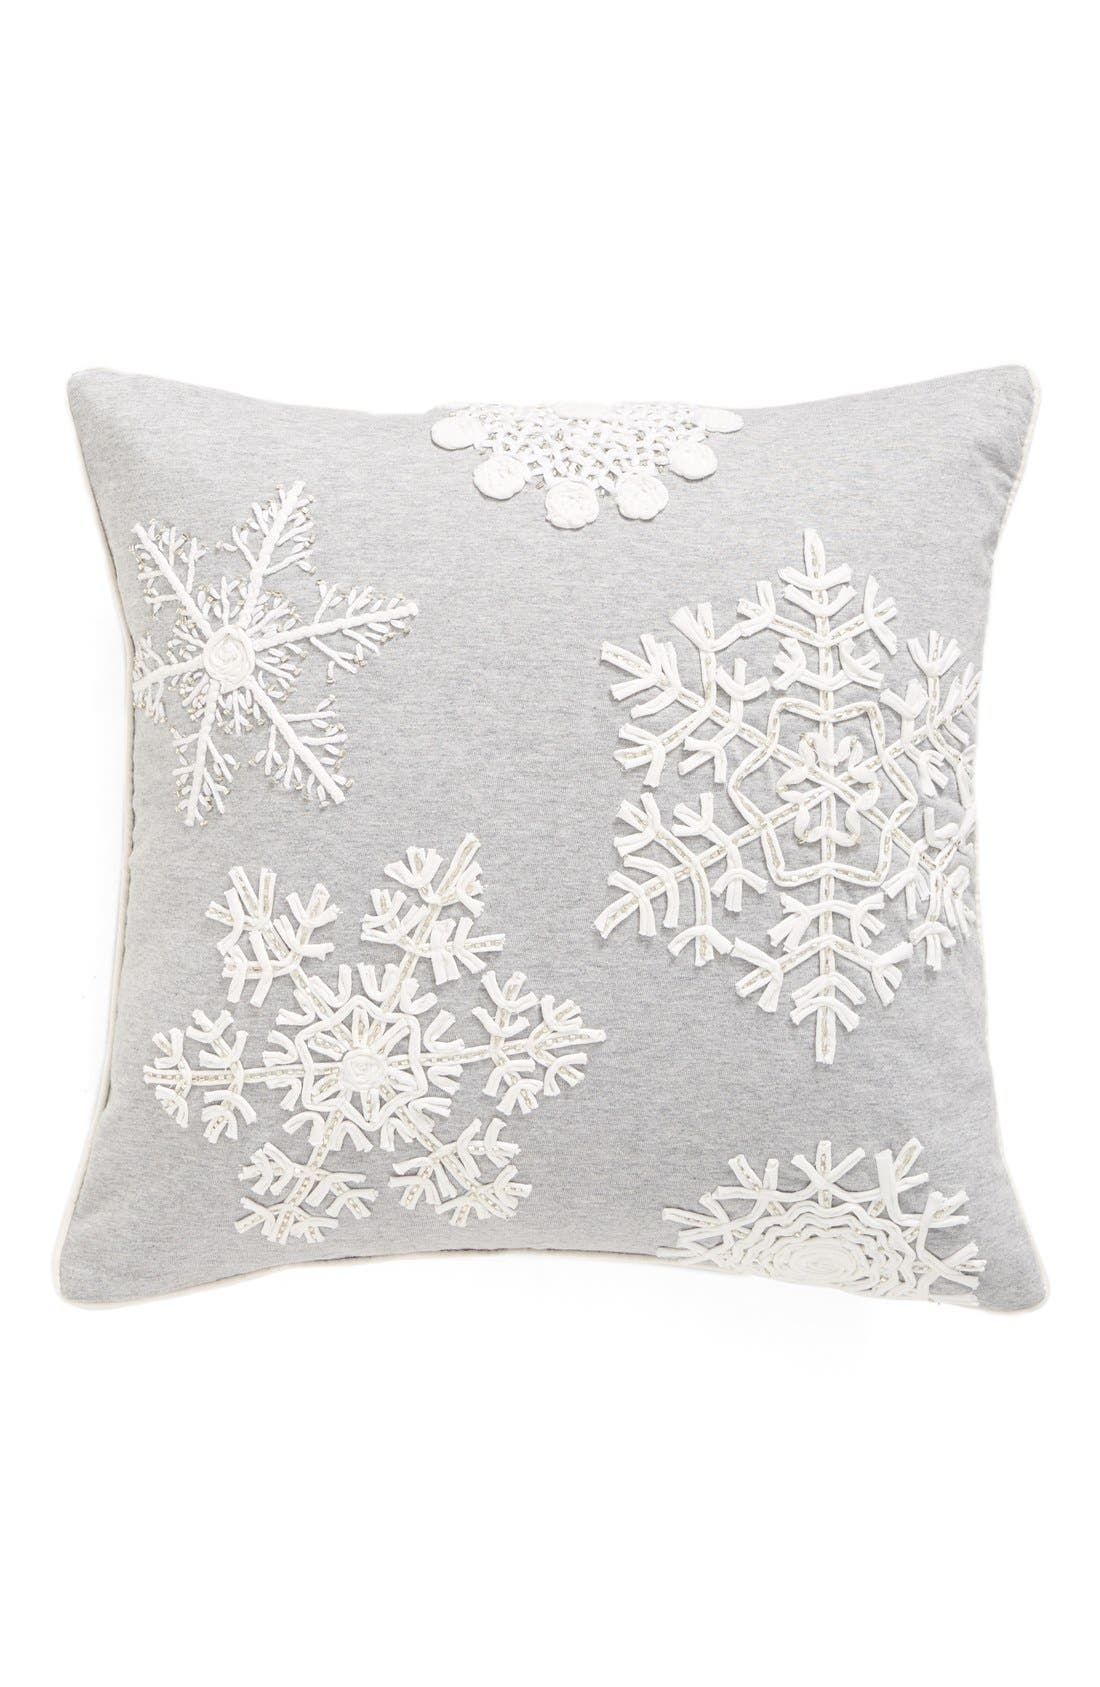 Snowflake Jersey Accent Pillow,                             Main thumbnail 1, color,                             Grey Heather